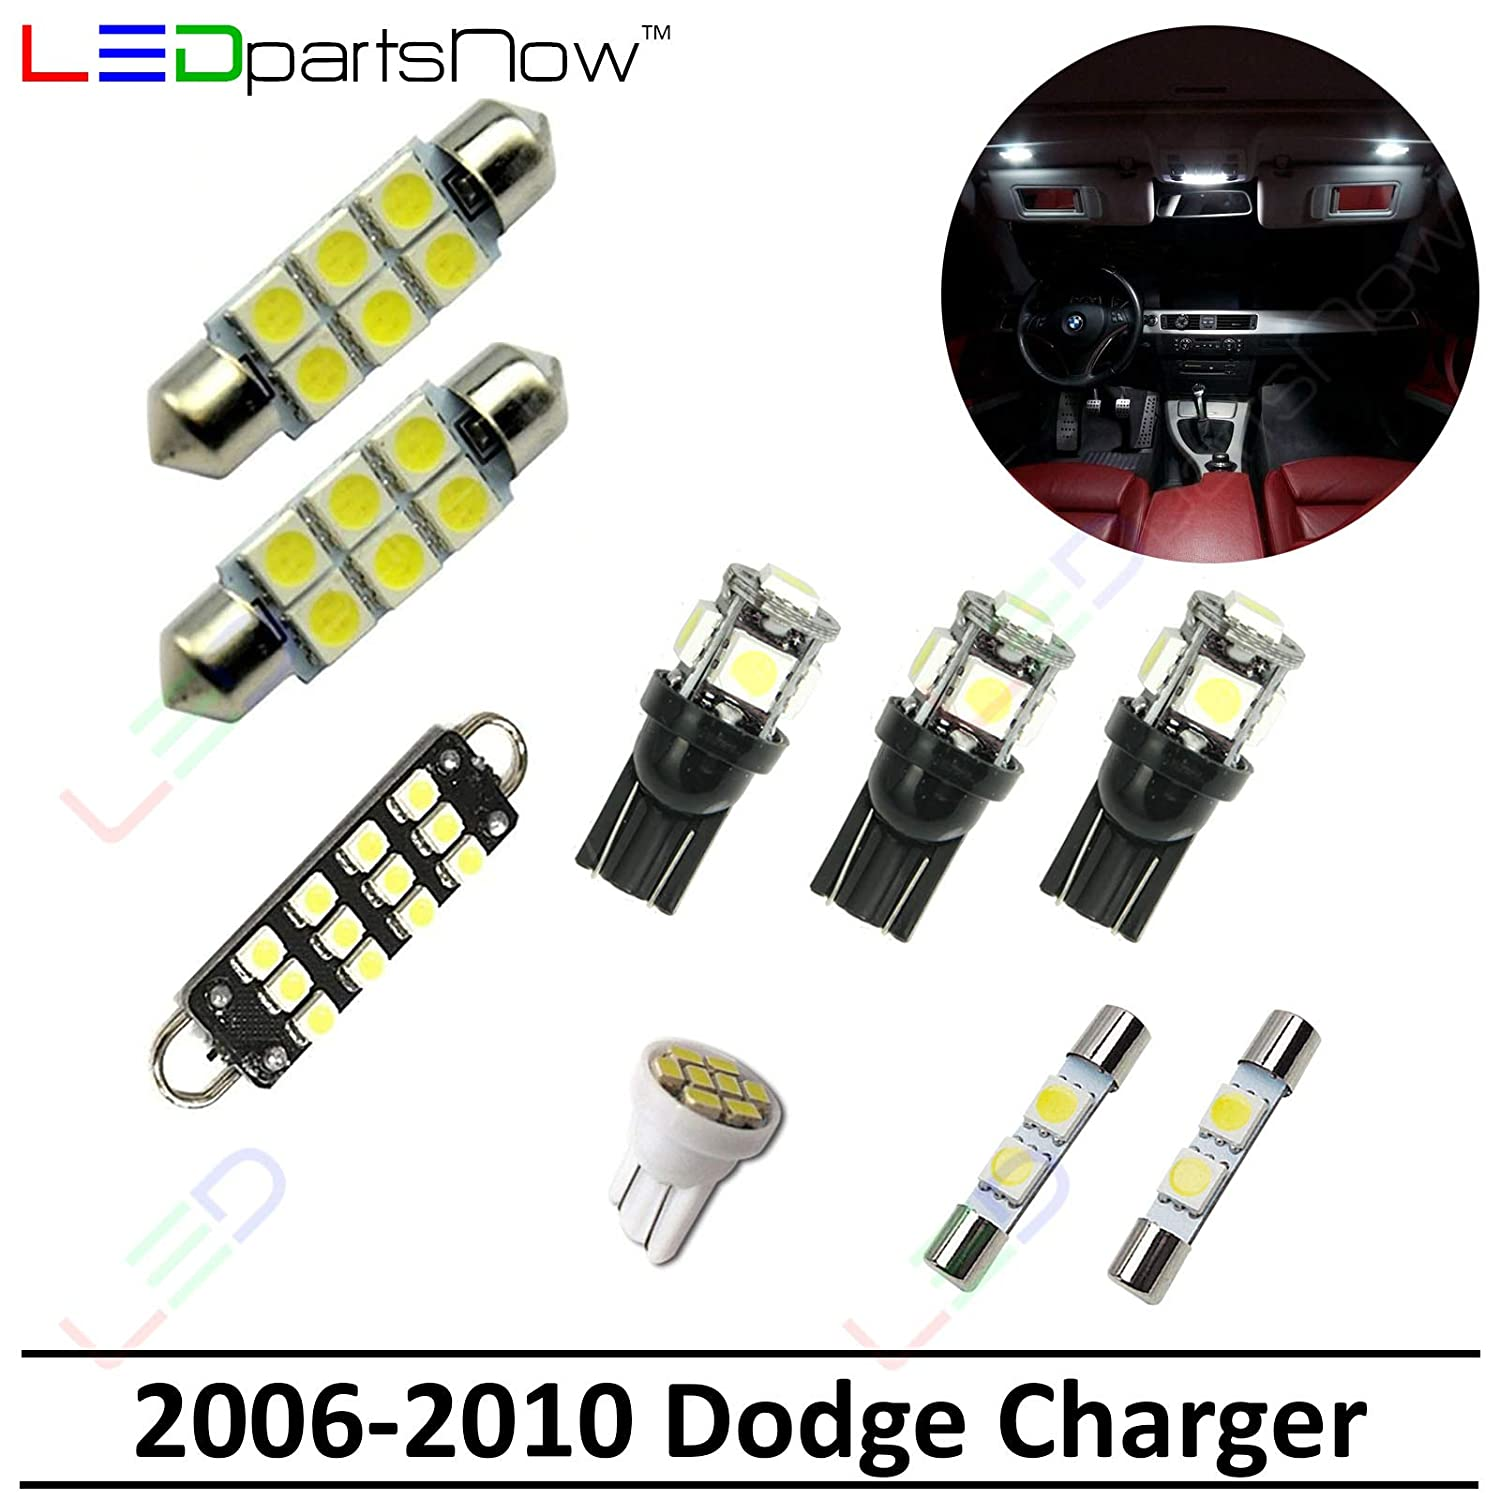 Ledpartsnow Interior Led Lights Replacement For 2006 2010 Dodge Charger Accessories Package Kit 9 Bulbs White